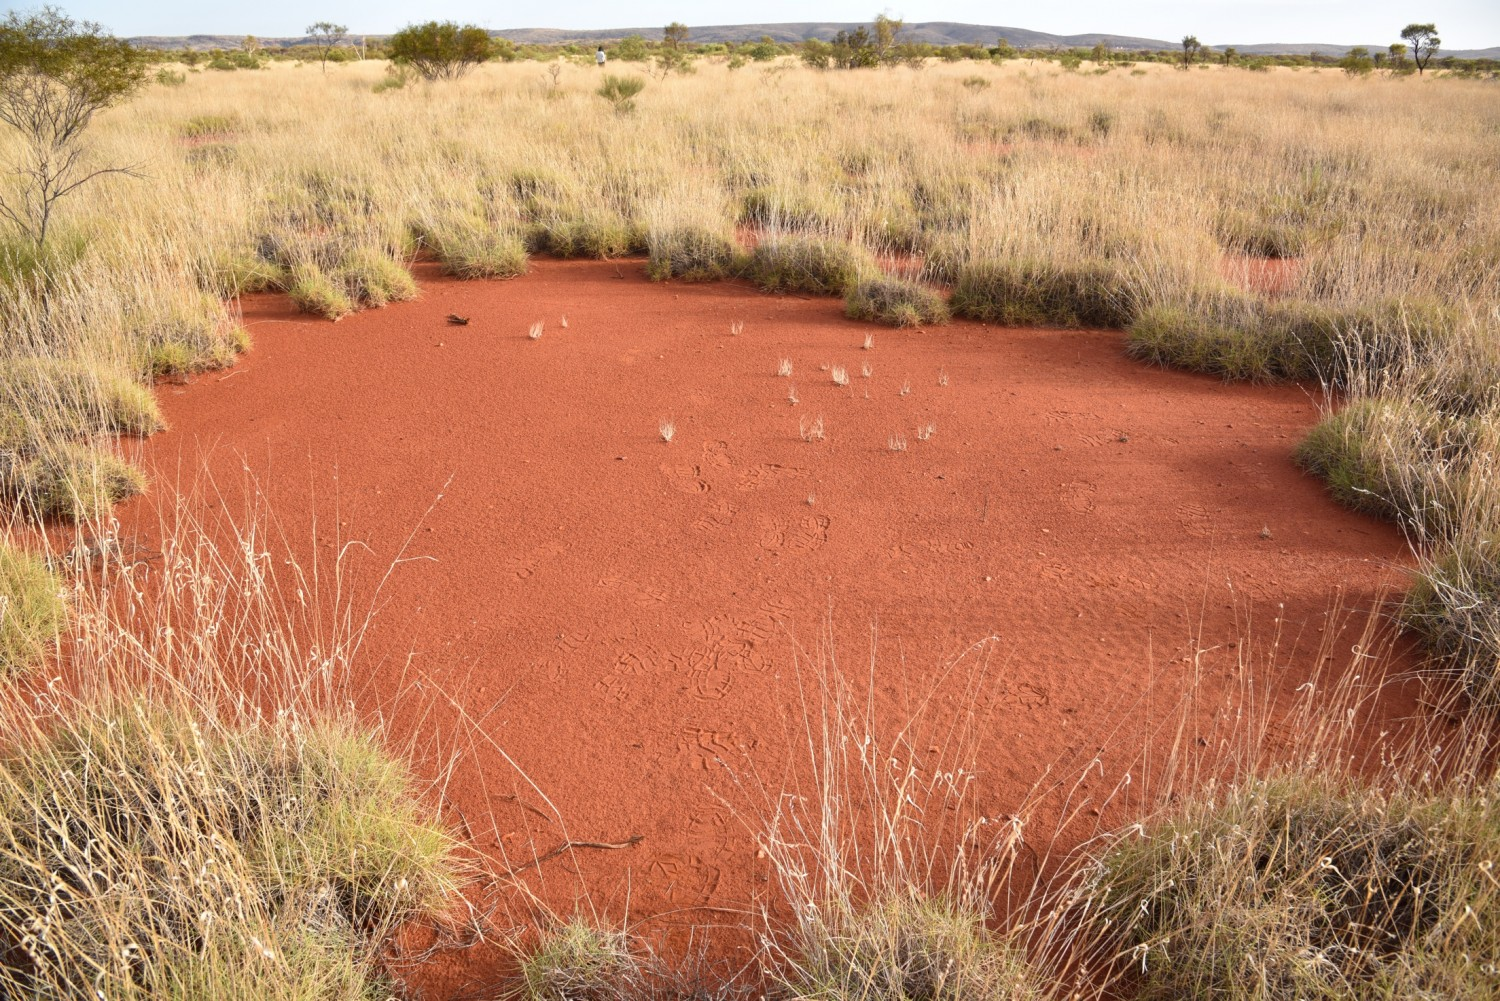 A large fairy circle with a hardened top-soil layer that prevents the growth of grass. Australian fairy circles have mean diameters of 4 meters but some may exceed 7 meters. Photo: Dr. Stephan Getzin.